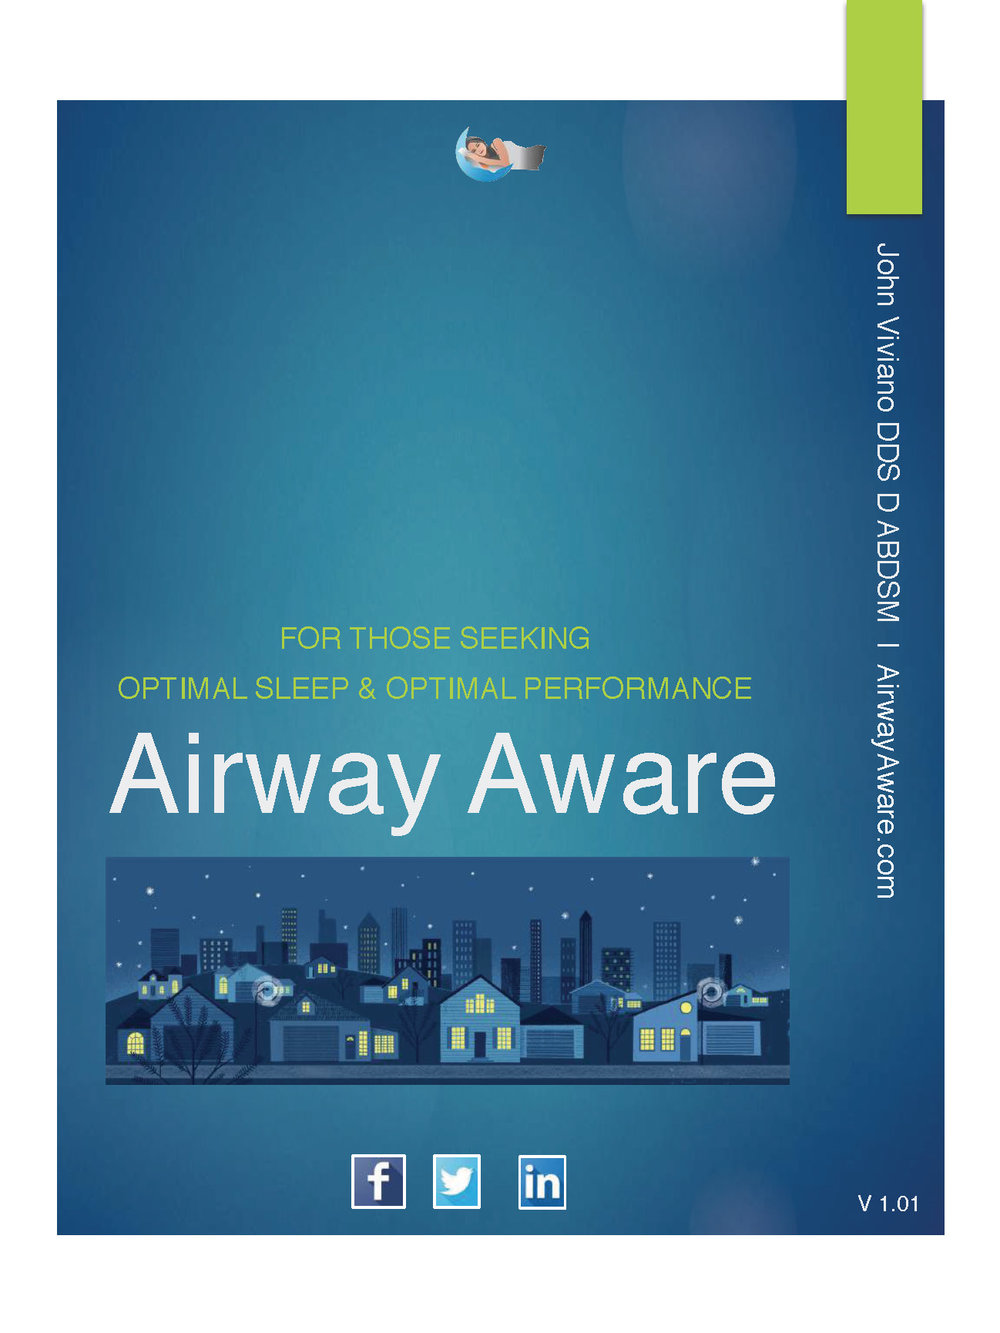 Be Airway Aware - This eBook is of interest to Human Resources Officers, Mentors, Coaches, Teachers, Clinicians, Parents or anyone seeking optimal sleep and optimal performance. Sleep should become one of the subjects you discuss, review and prioritize in your daily interactions.By optimizing sleep, you will optimize performance at home, school, in the workplace and on the playing field. You will be healthier and live a longer, happier life. All of this can be accomplished by no more effort than getting a good night's sleep!